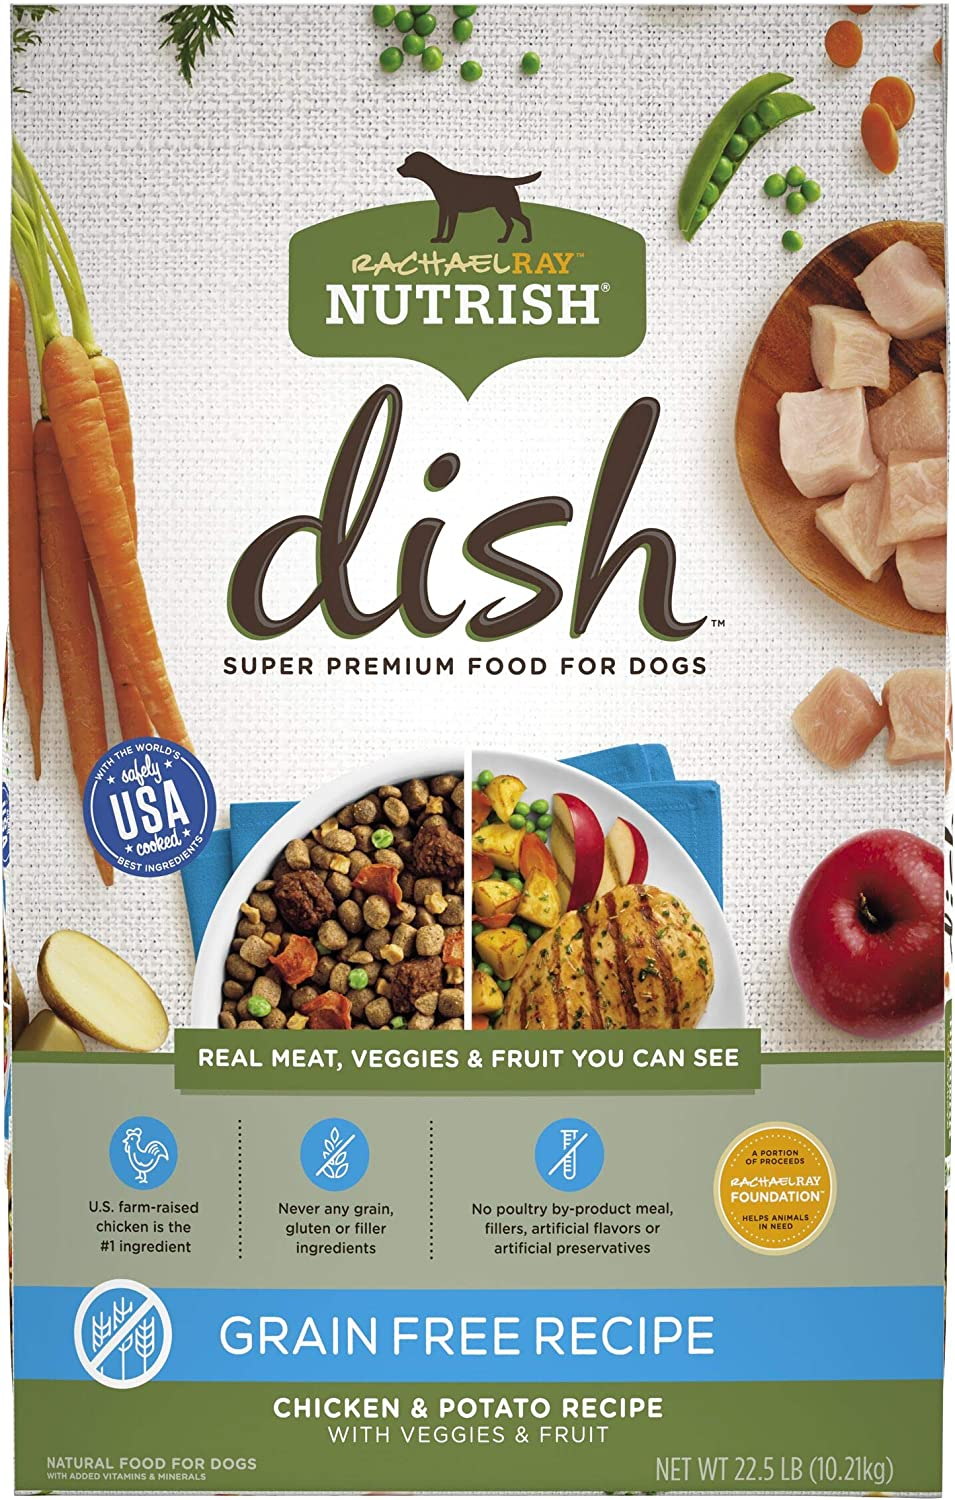 Rachael Ray Nutrish Dish Premium Natural Dry Dog Food, Chicken & Potato Recipe with Veggies & Fruit, 22.5 Pounds, Grain Free